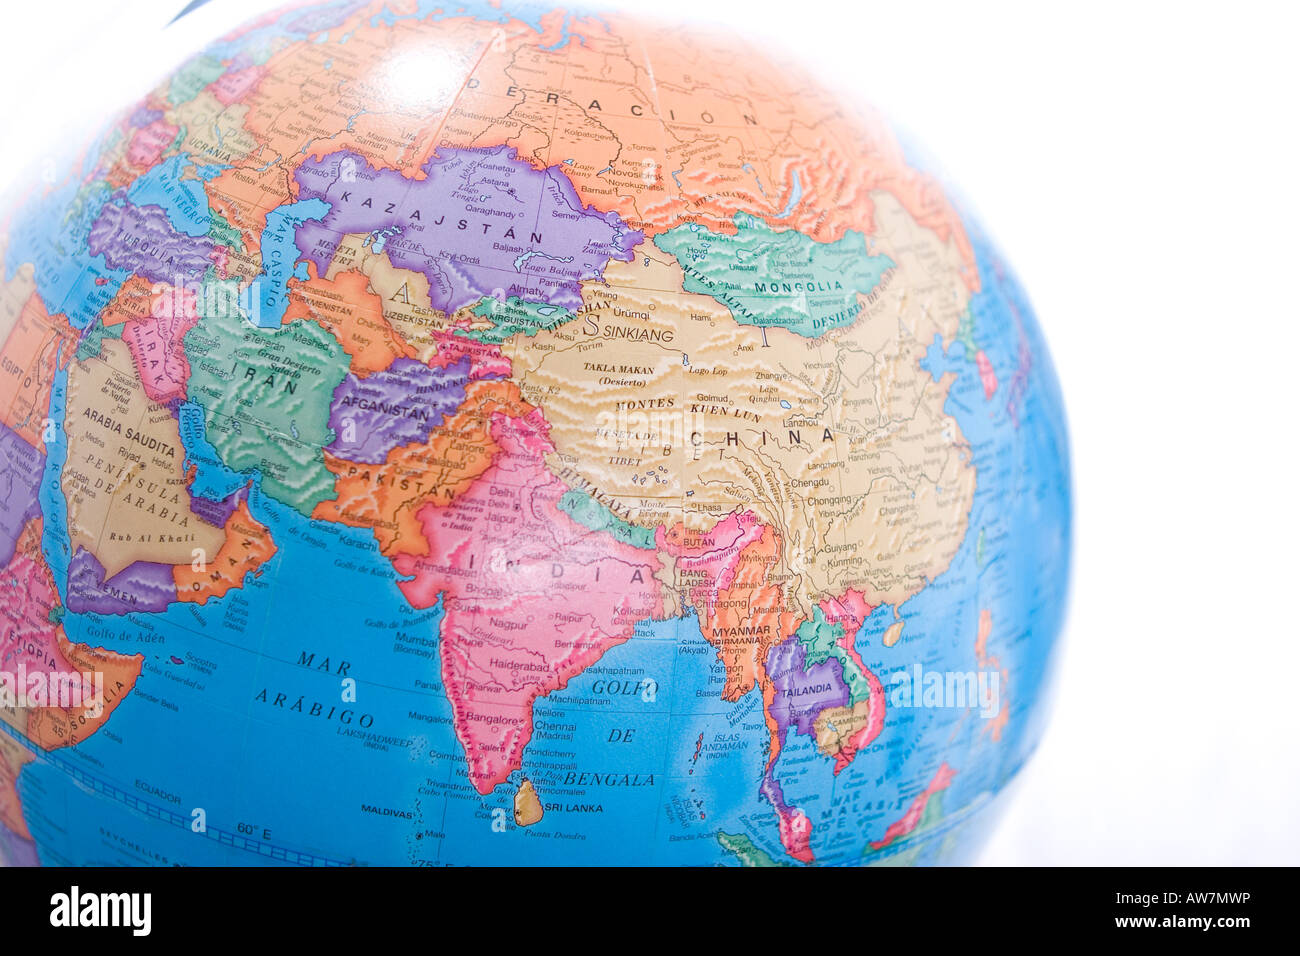 Asia map stock photos asia map stock images alamy world map globe showing asia continent isolated on white background stock image gumiabroncs Gallery